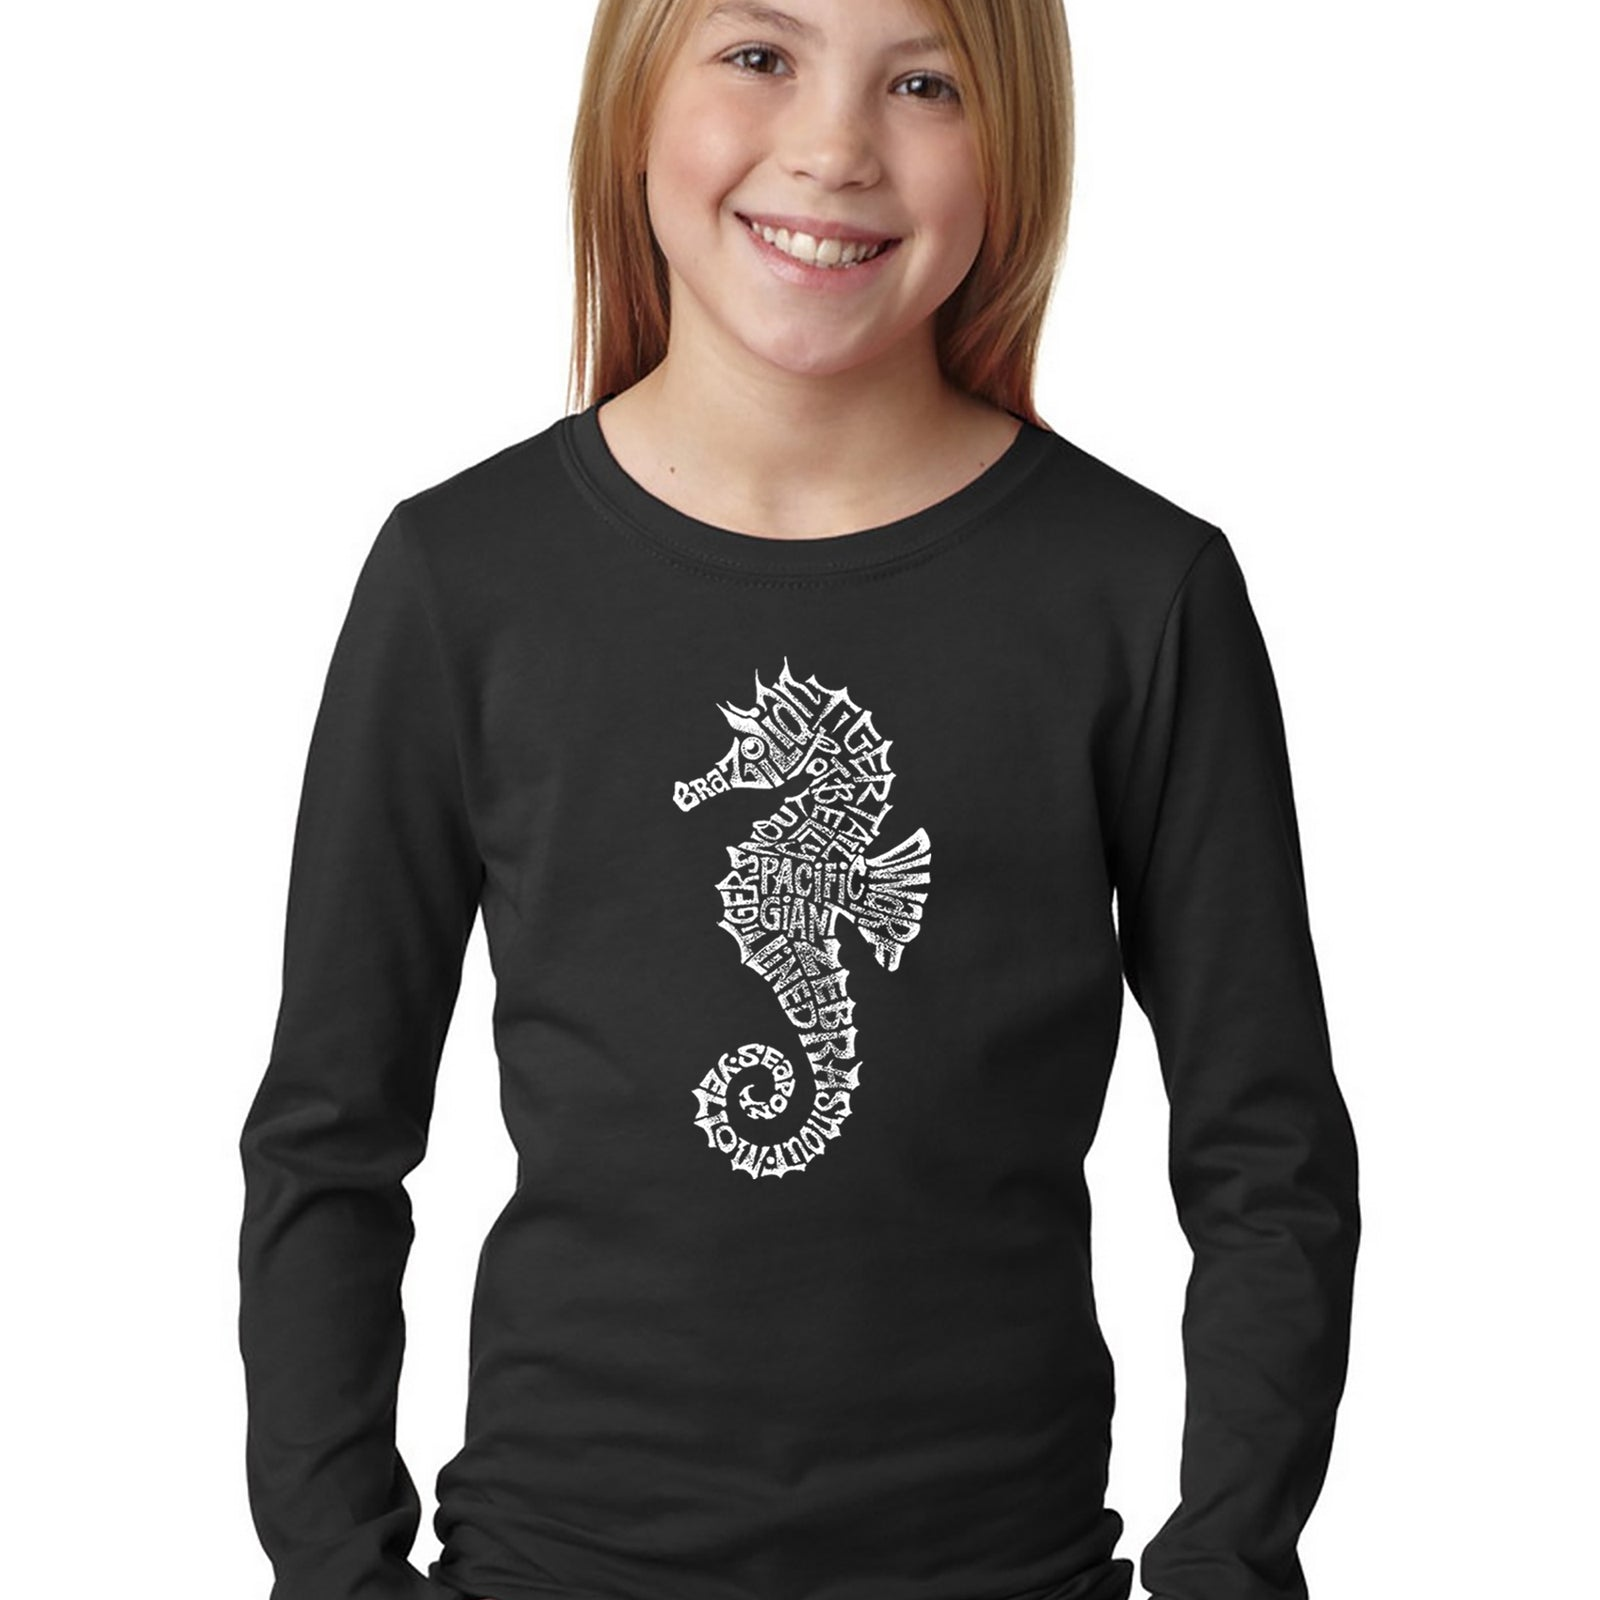 Girl's Word Art Long Sleeve - Types of Seahorse